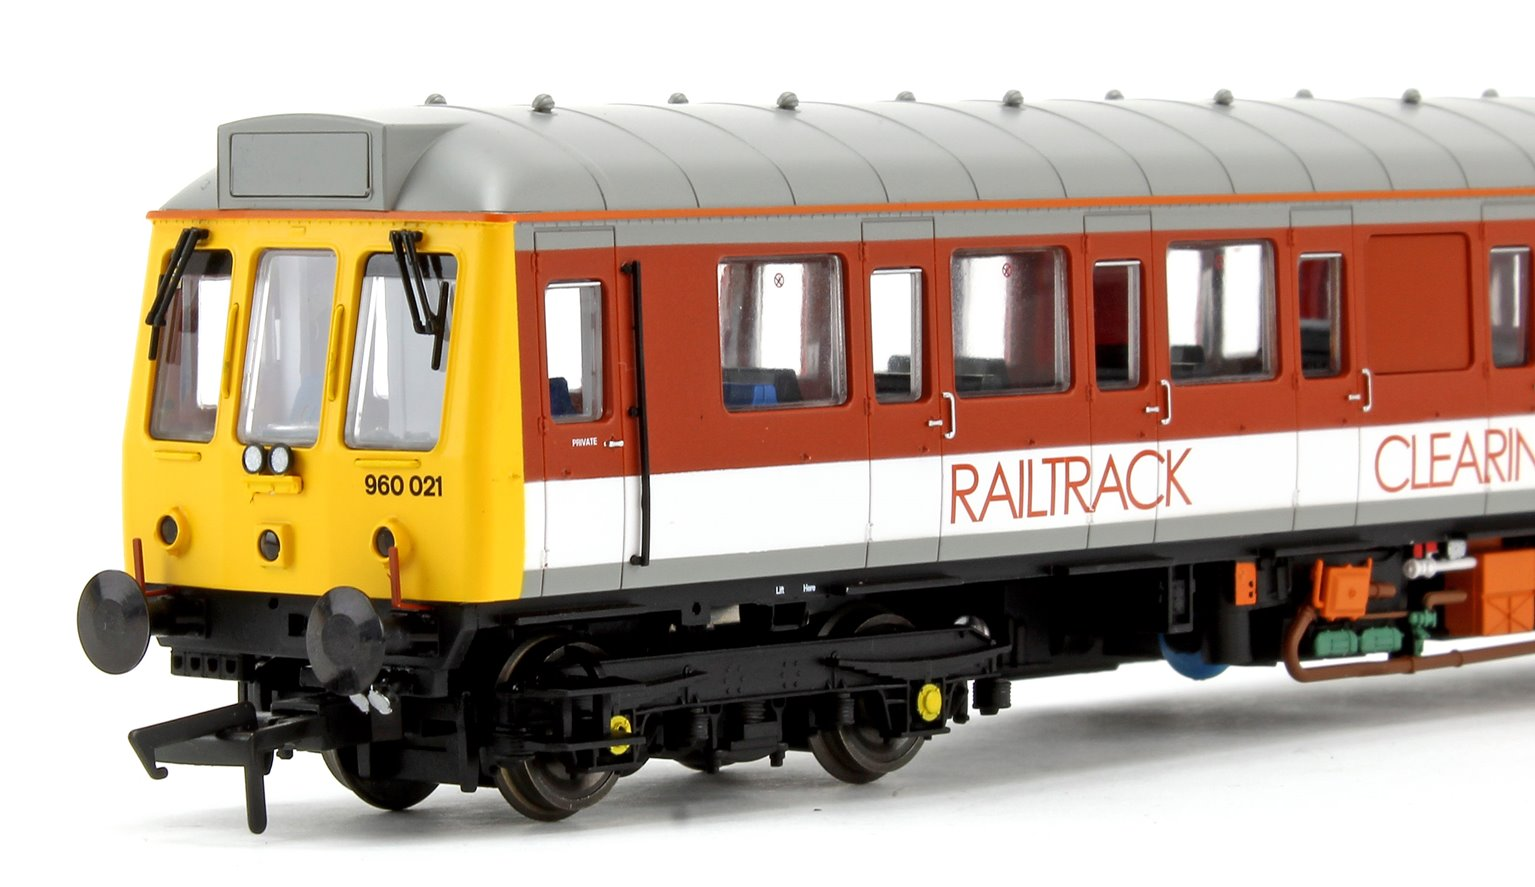 Class 121 Bubble Car Railtrack 'Clearing the way' Diesel Locomotive No.977723 - DCC Fitted